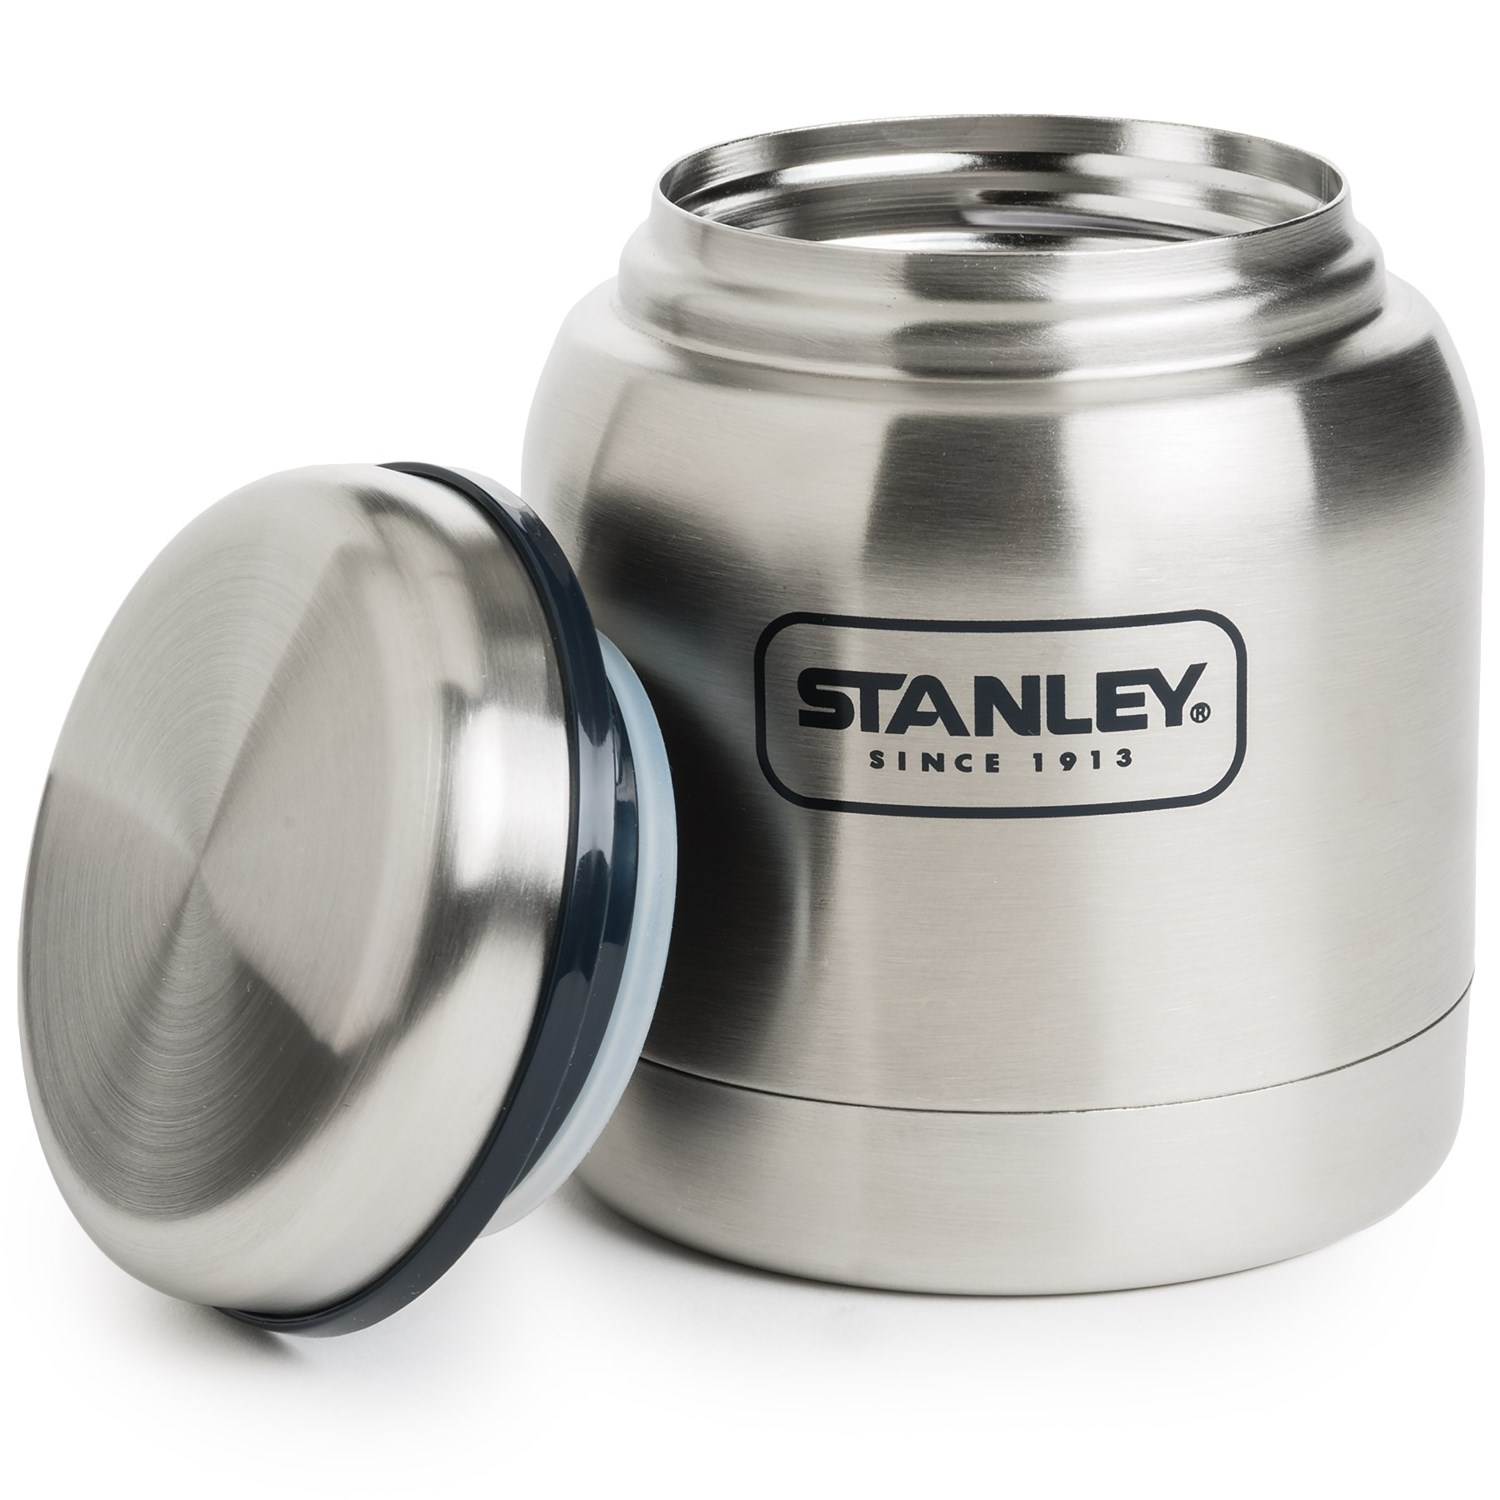 Stanley Adventure Series Vacuum Insulated Food Jar 10 Oz